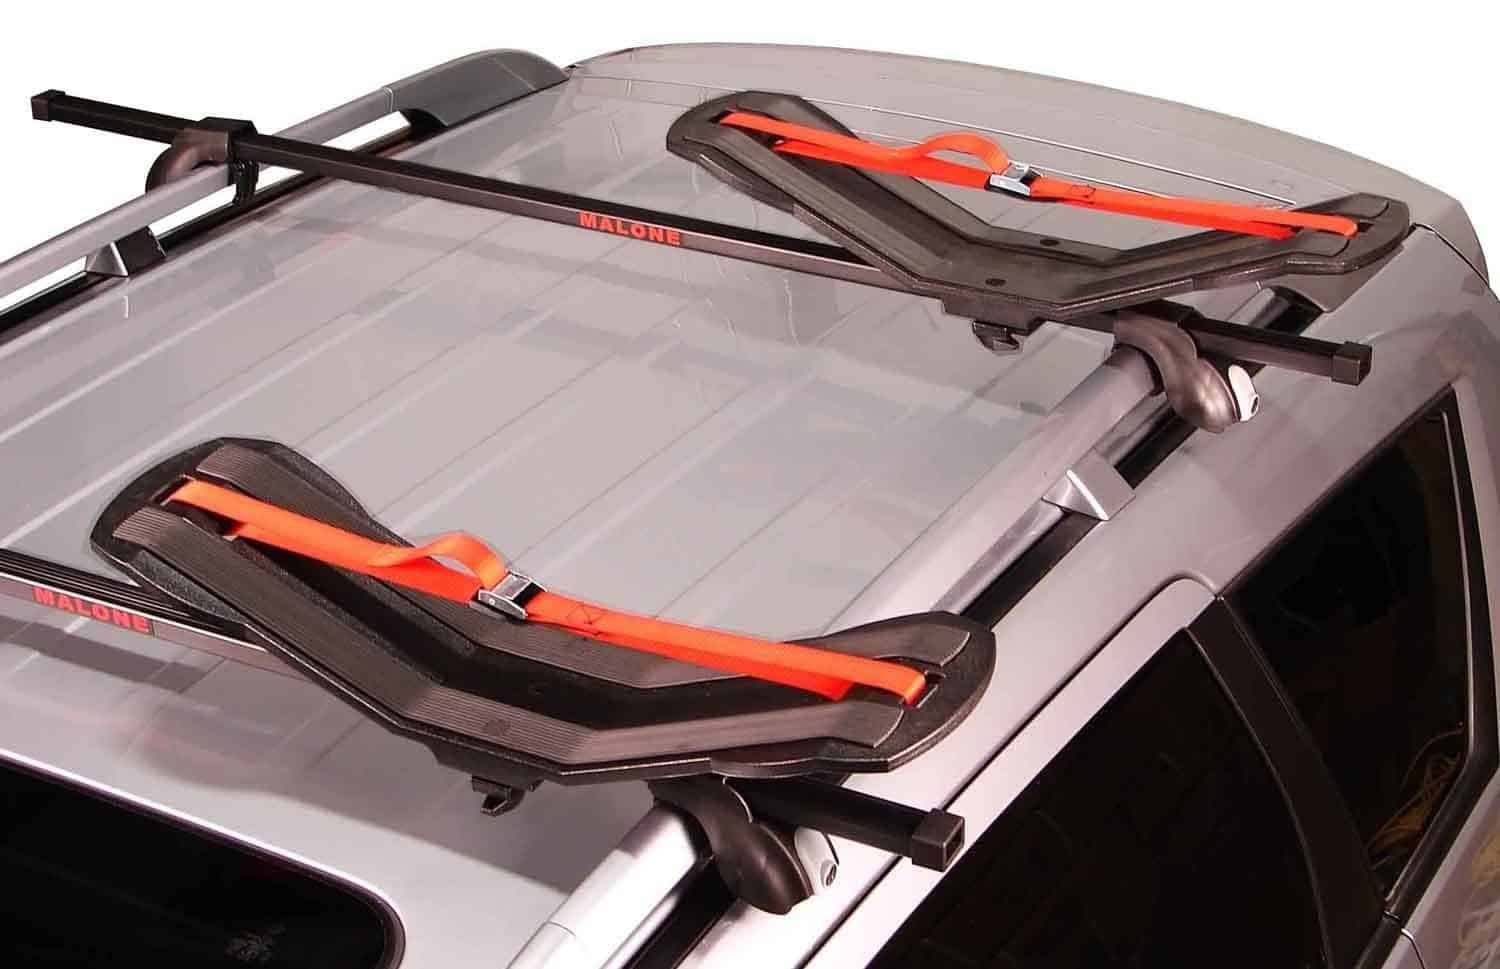 Kayak Saddle Carrier on car